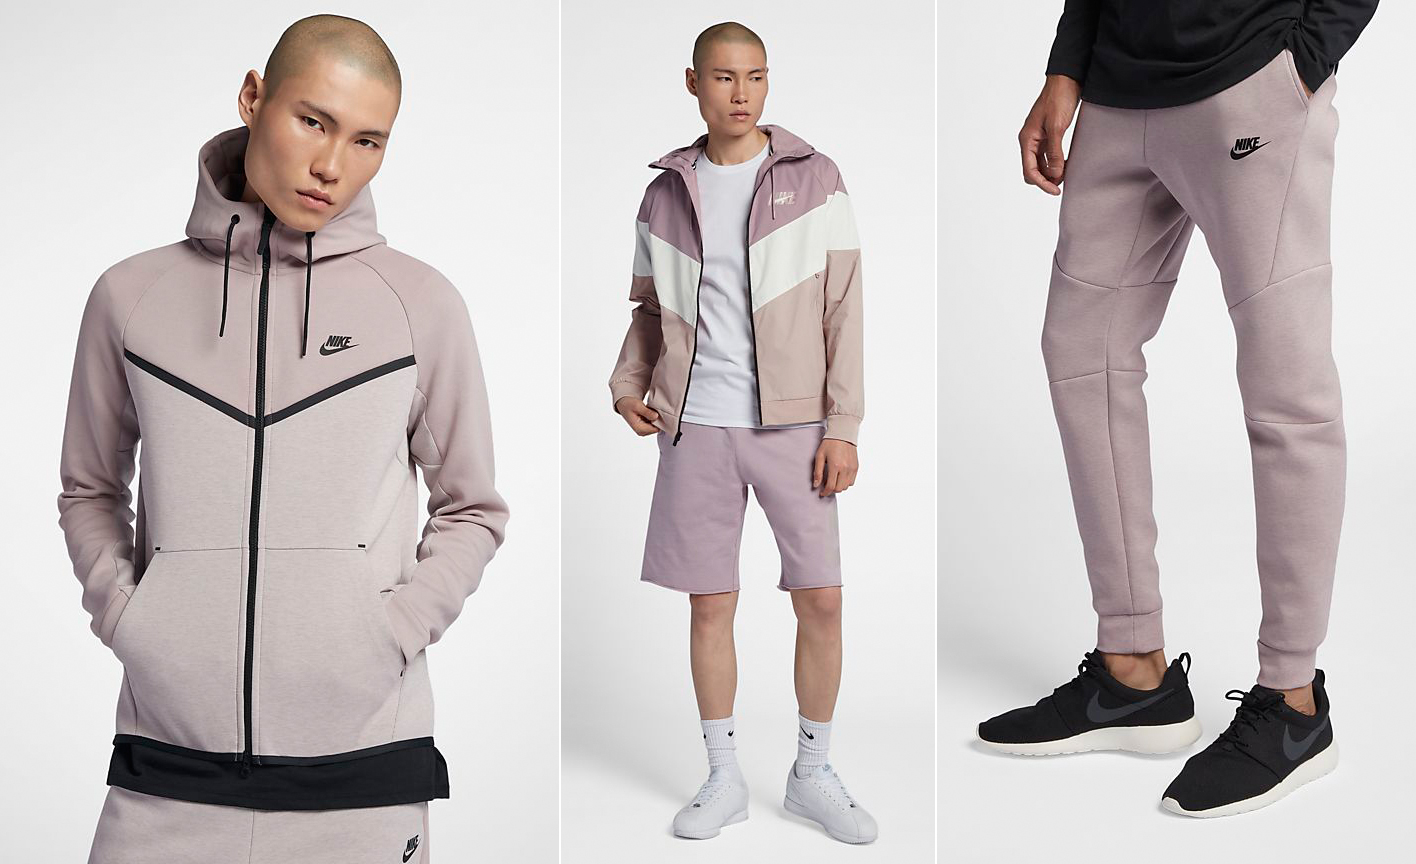 Nike Sportswear Particle Rose Clothing |